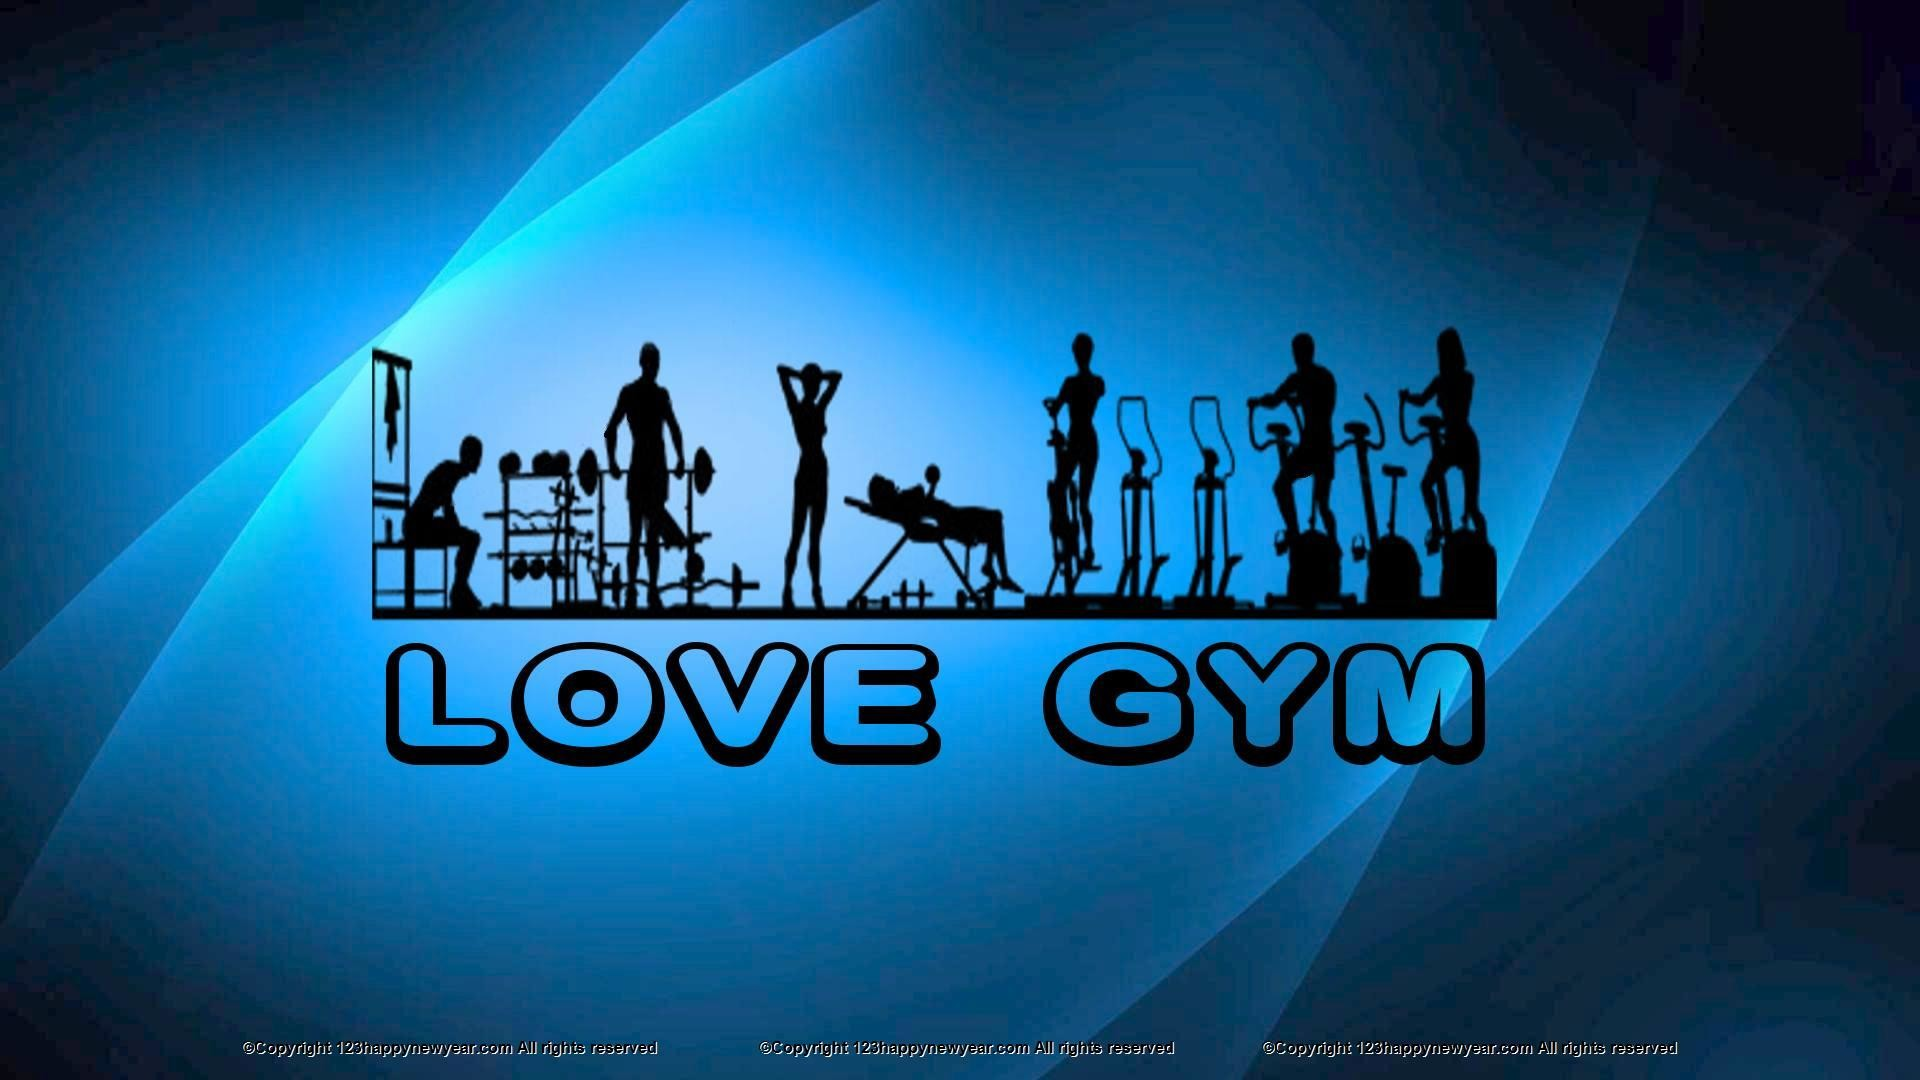 Gym Motivation Quotes Wallpapers Gym Wallpaper 64 Immagini